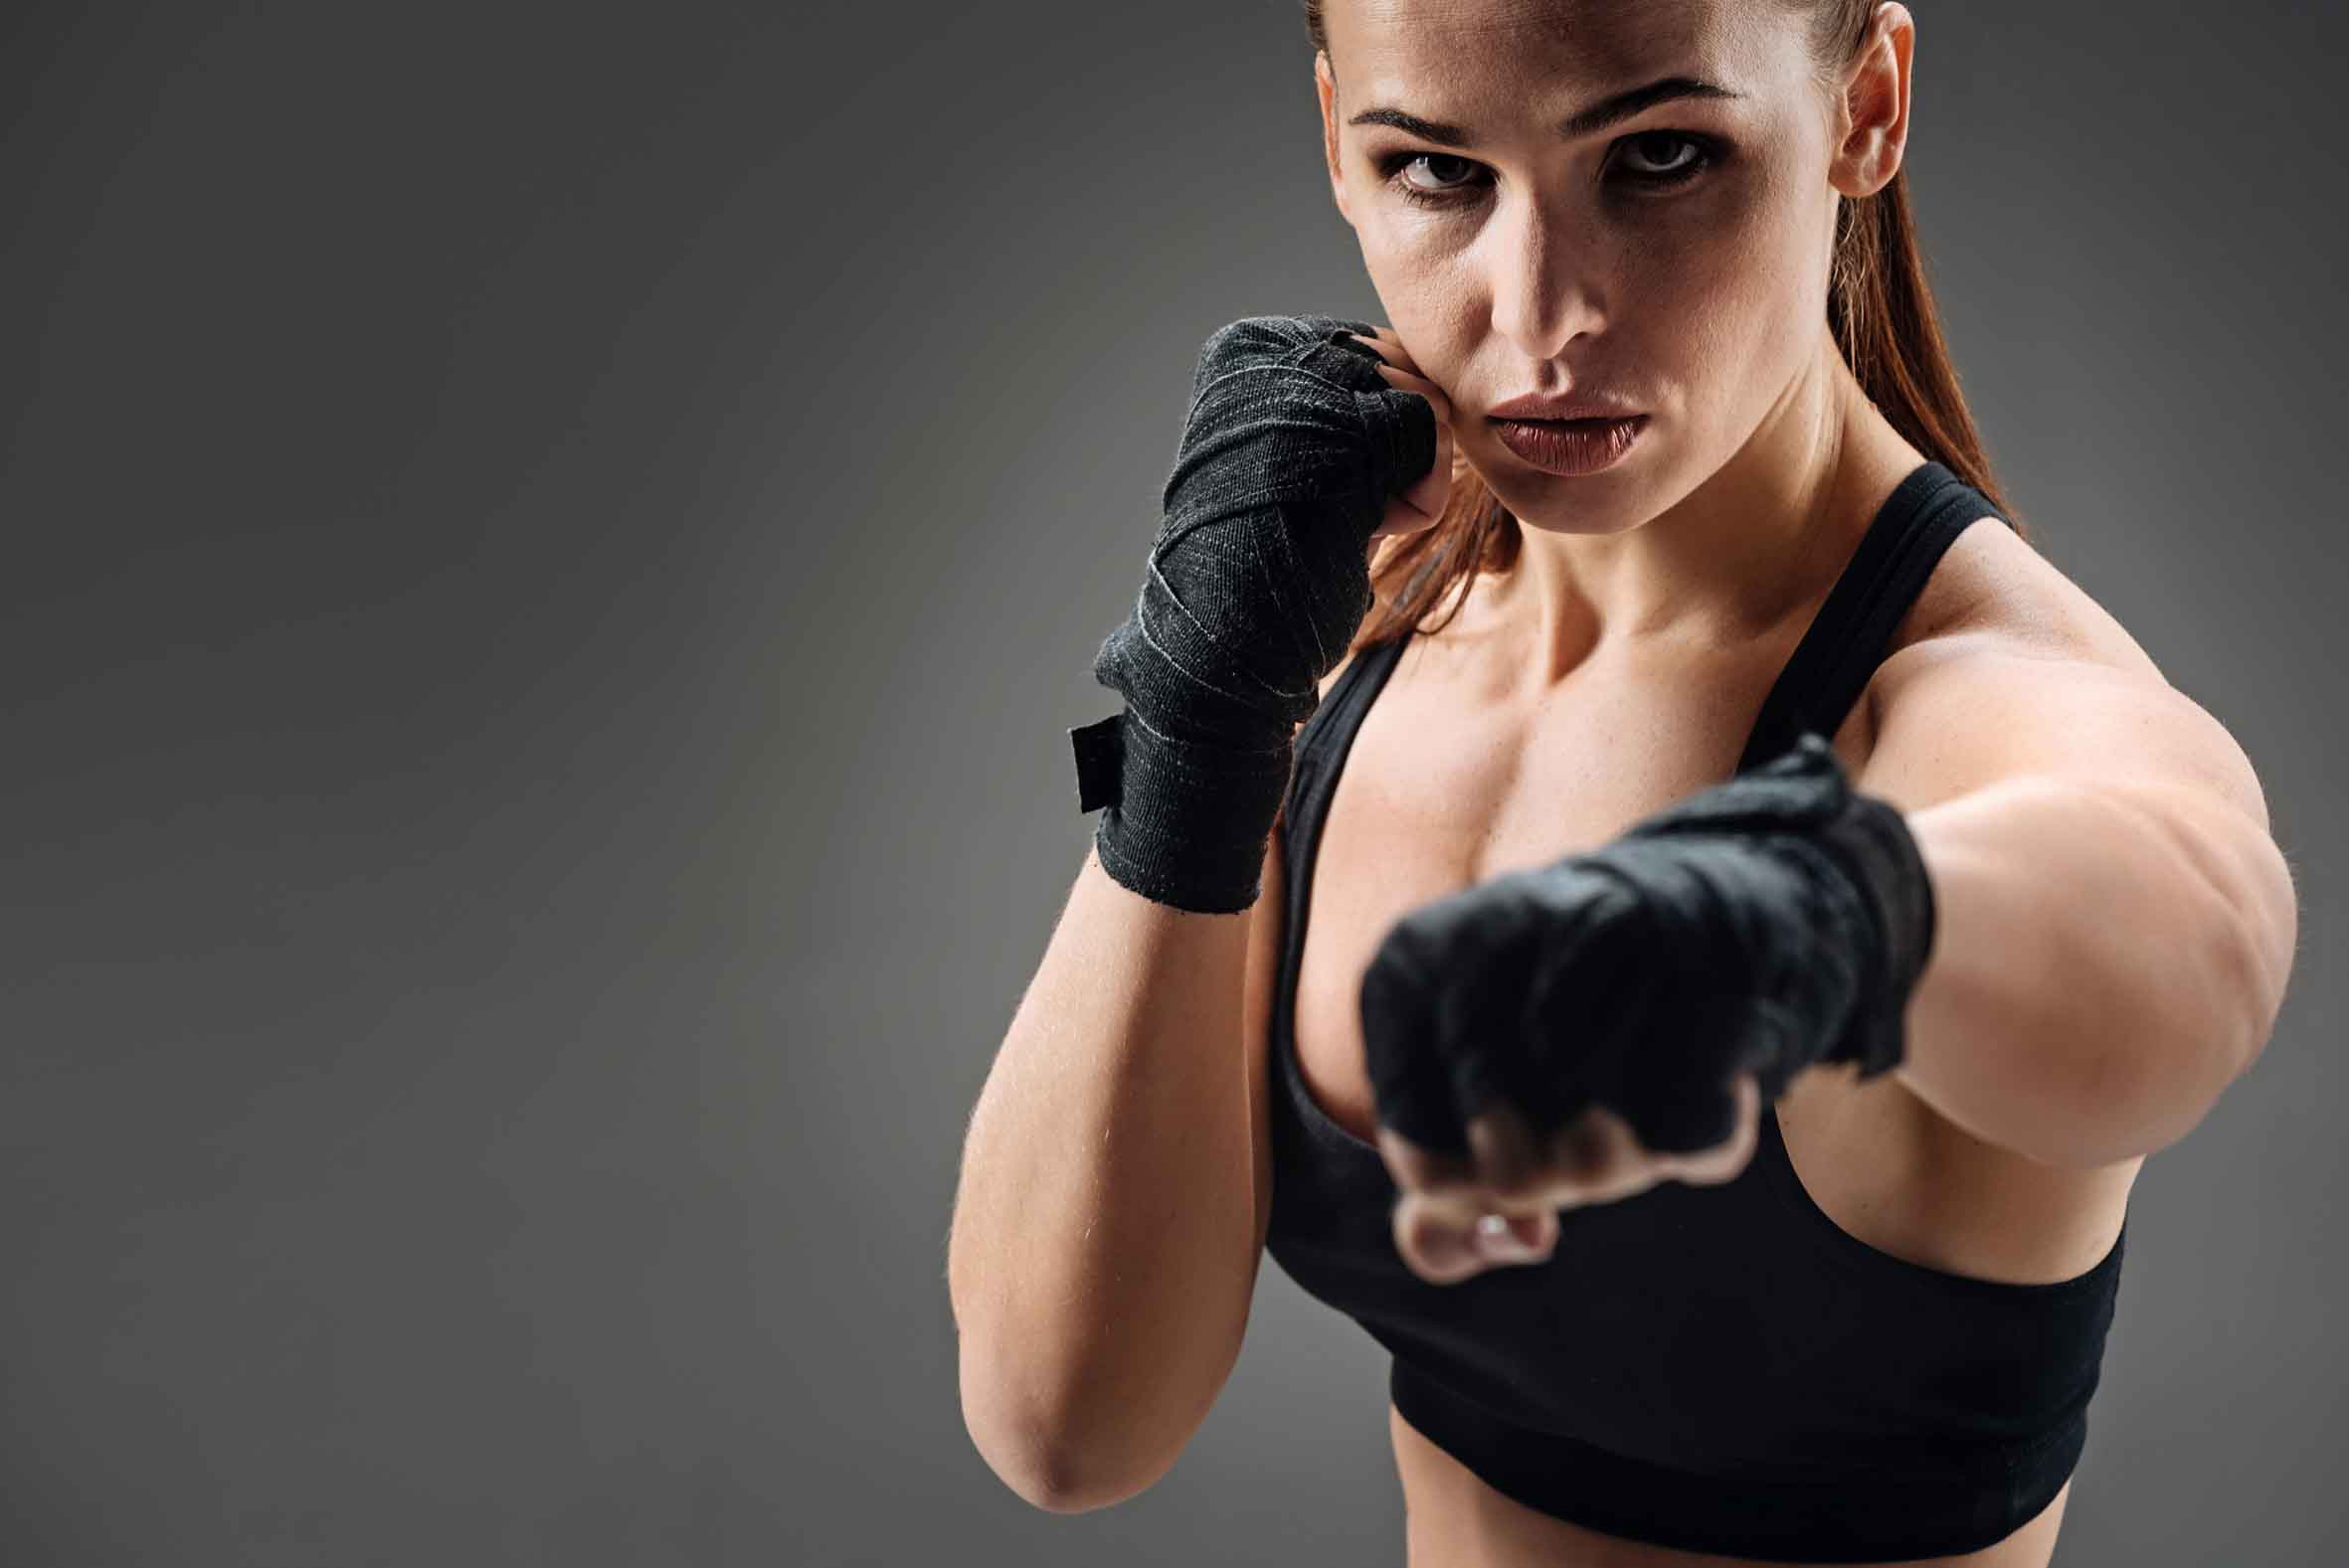 Joyful woman boxing on a grey background